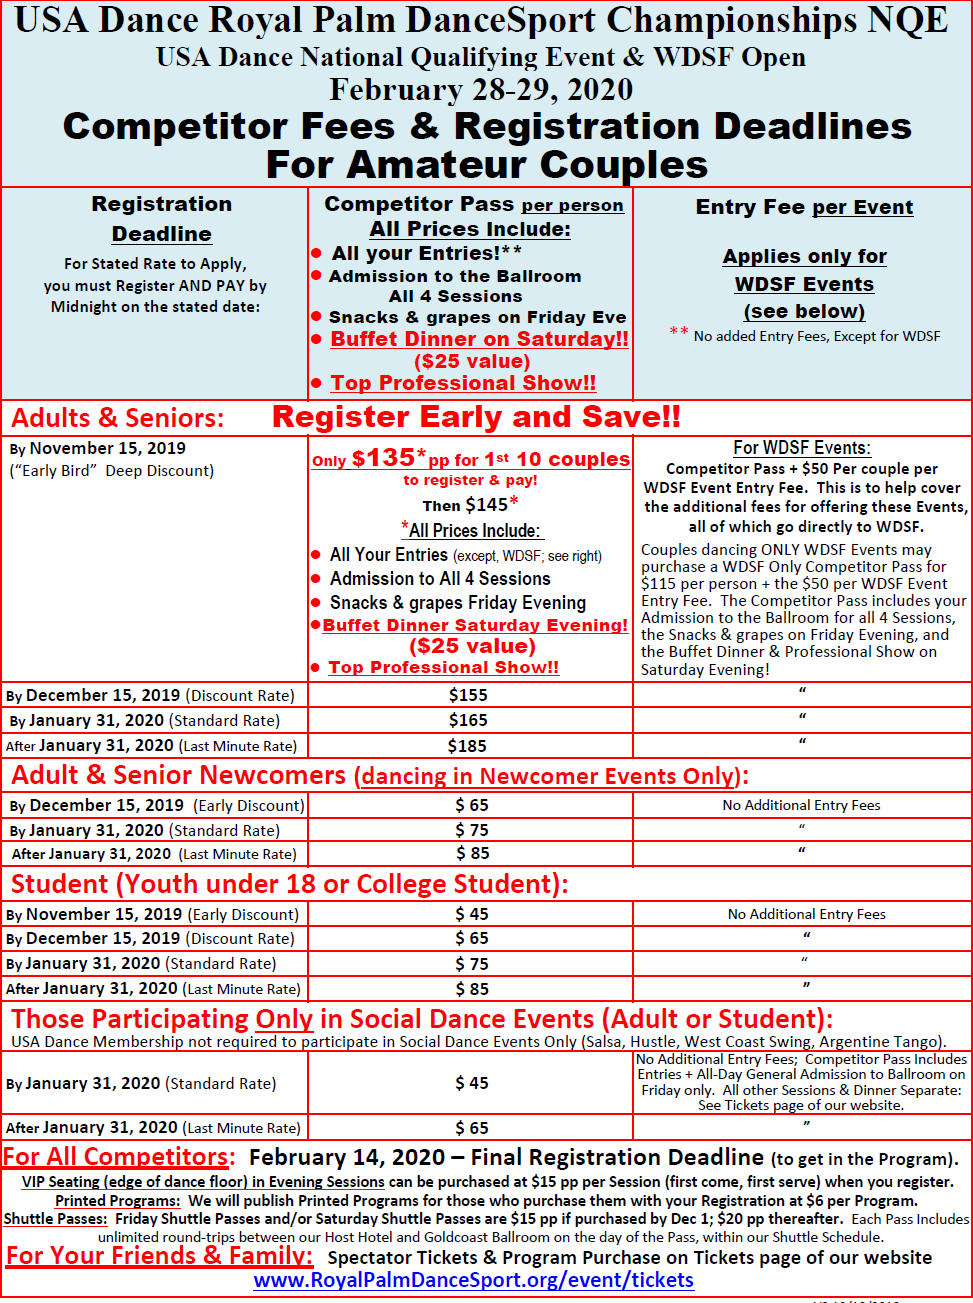 2020 Amateur Competitor Fees & Deadlines - Feb 28-29, 2020 Royal Palm DanceSport Championships NQE & WDSF Open